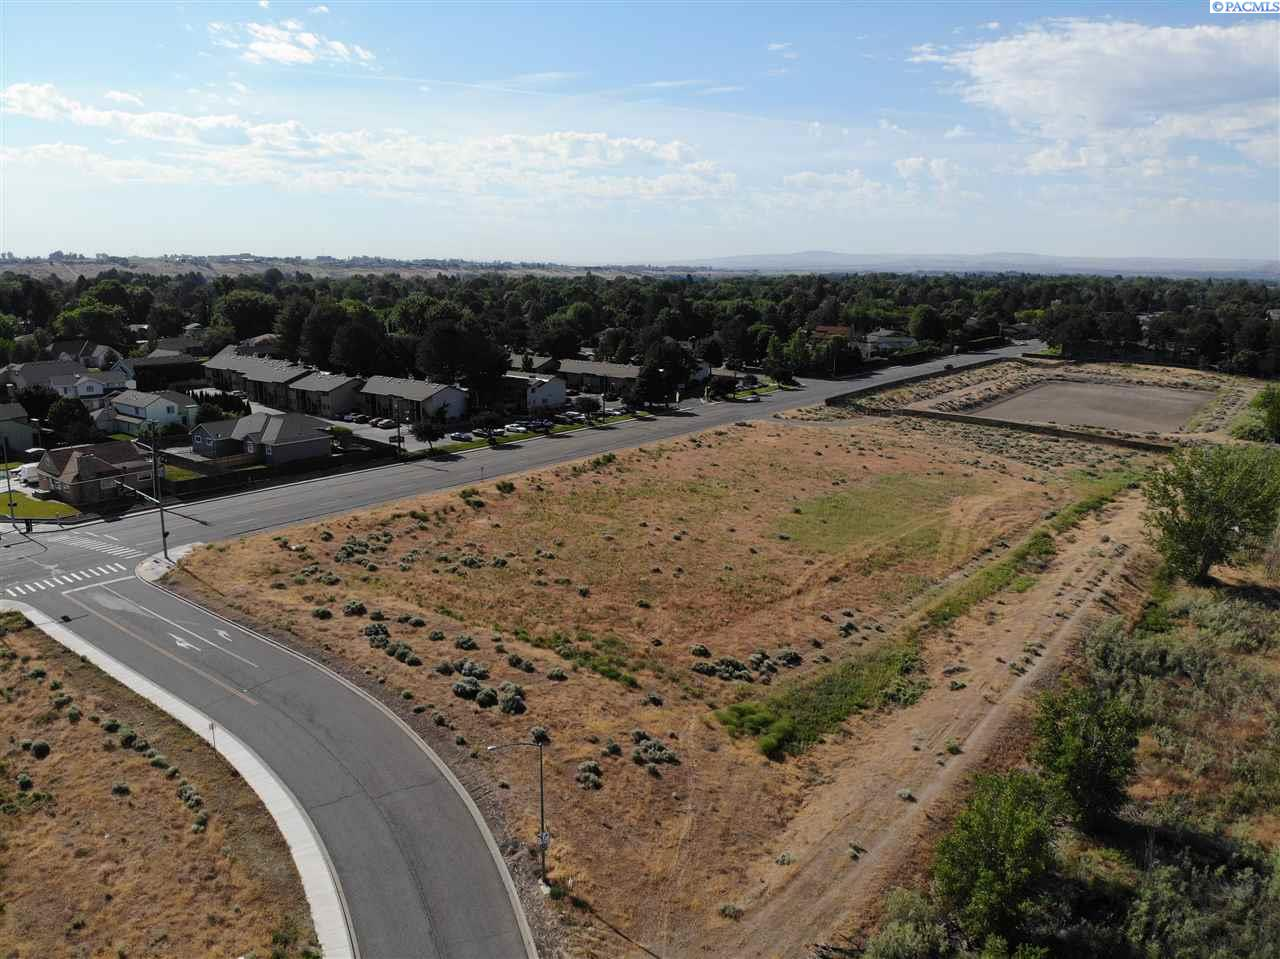 Land for Sale at 2555 George Washington Way Richland, Washington 99352 United States